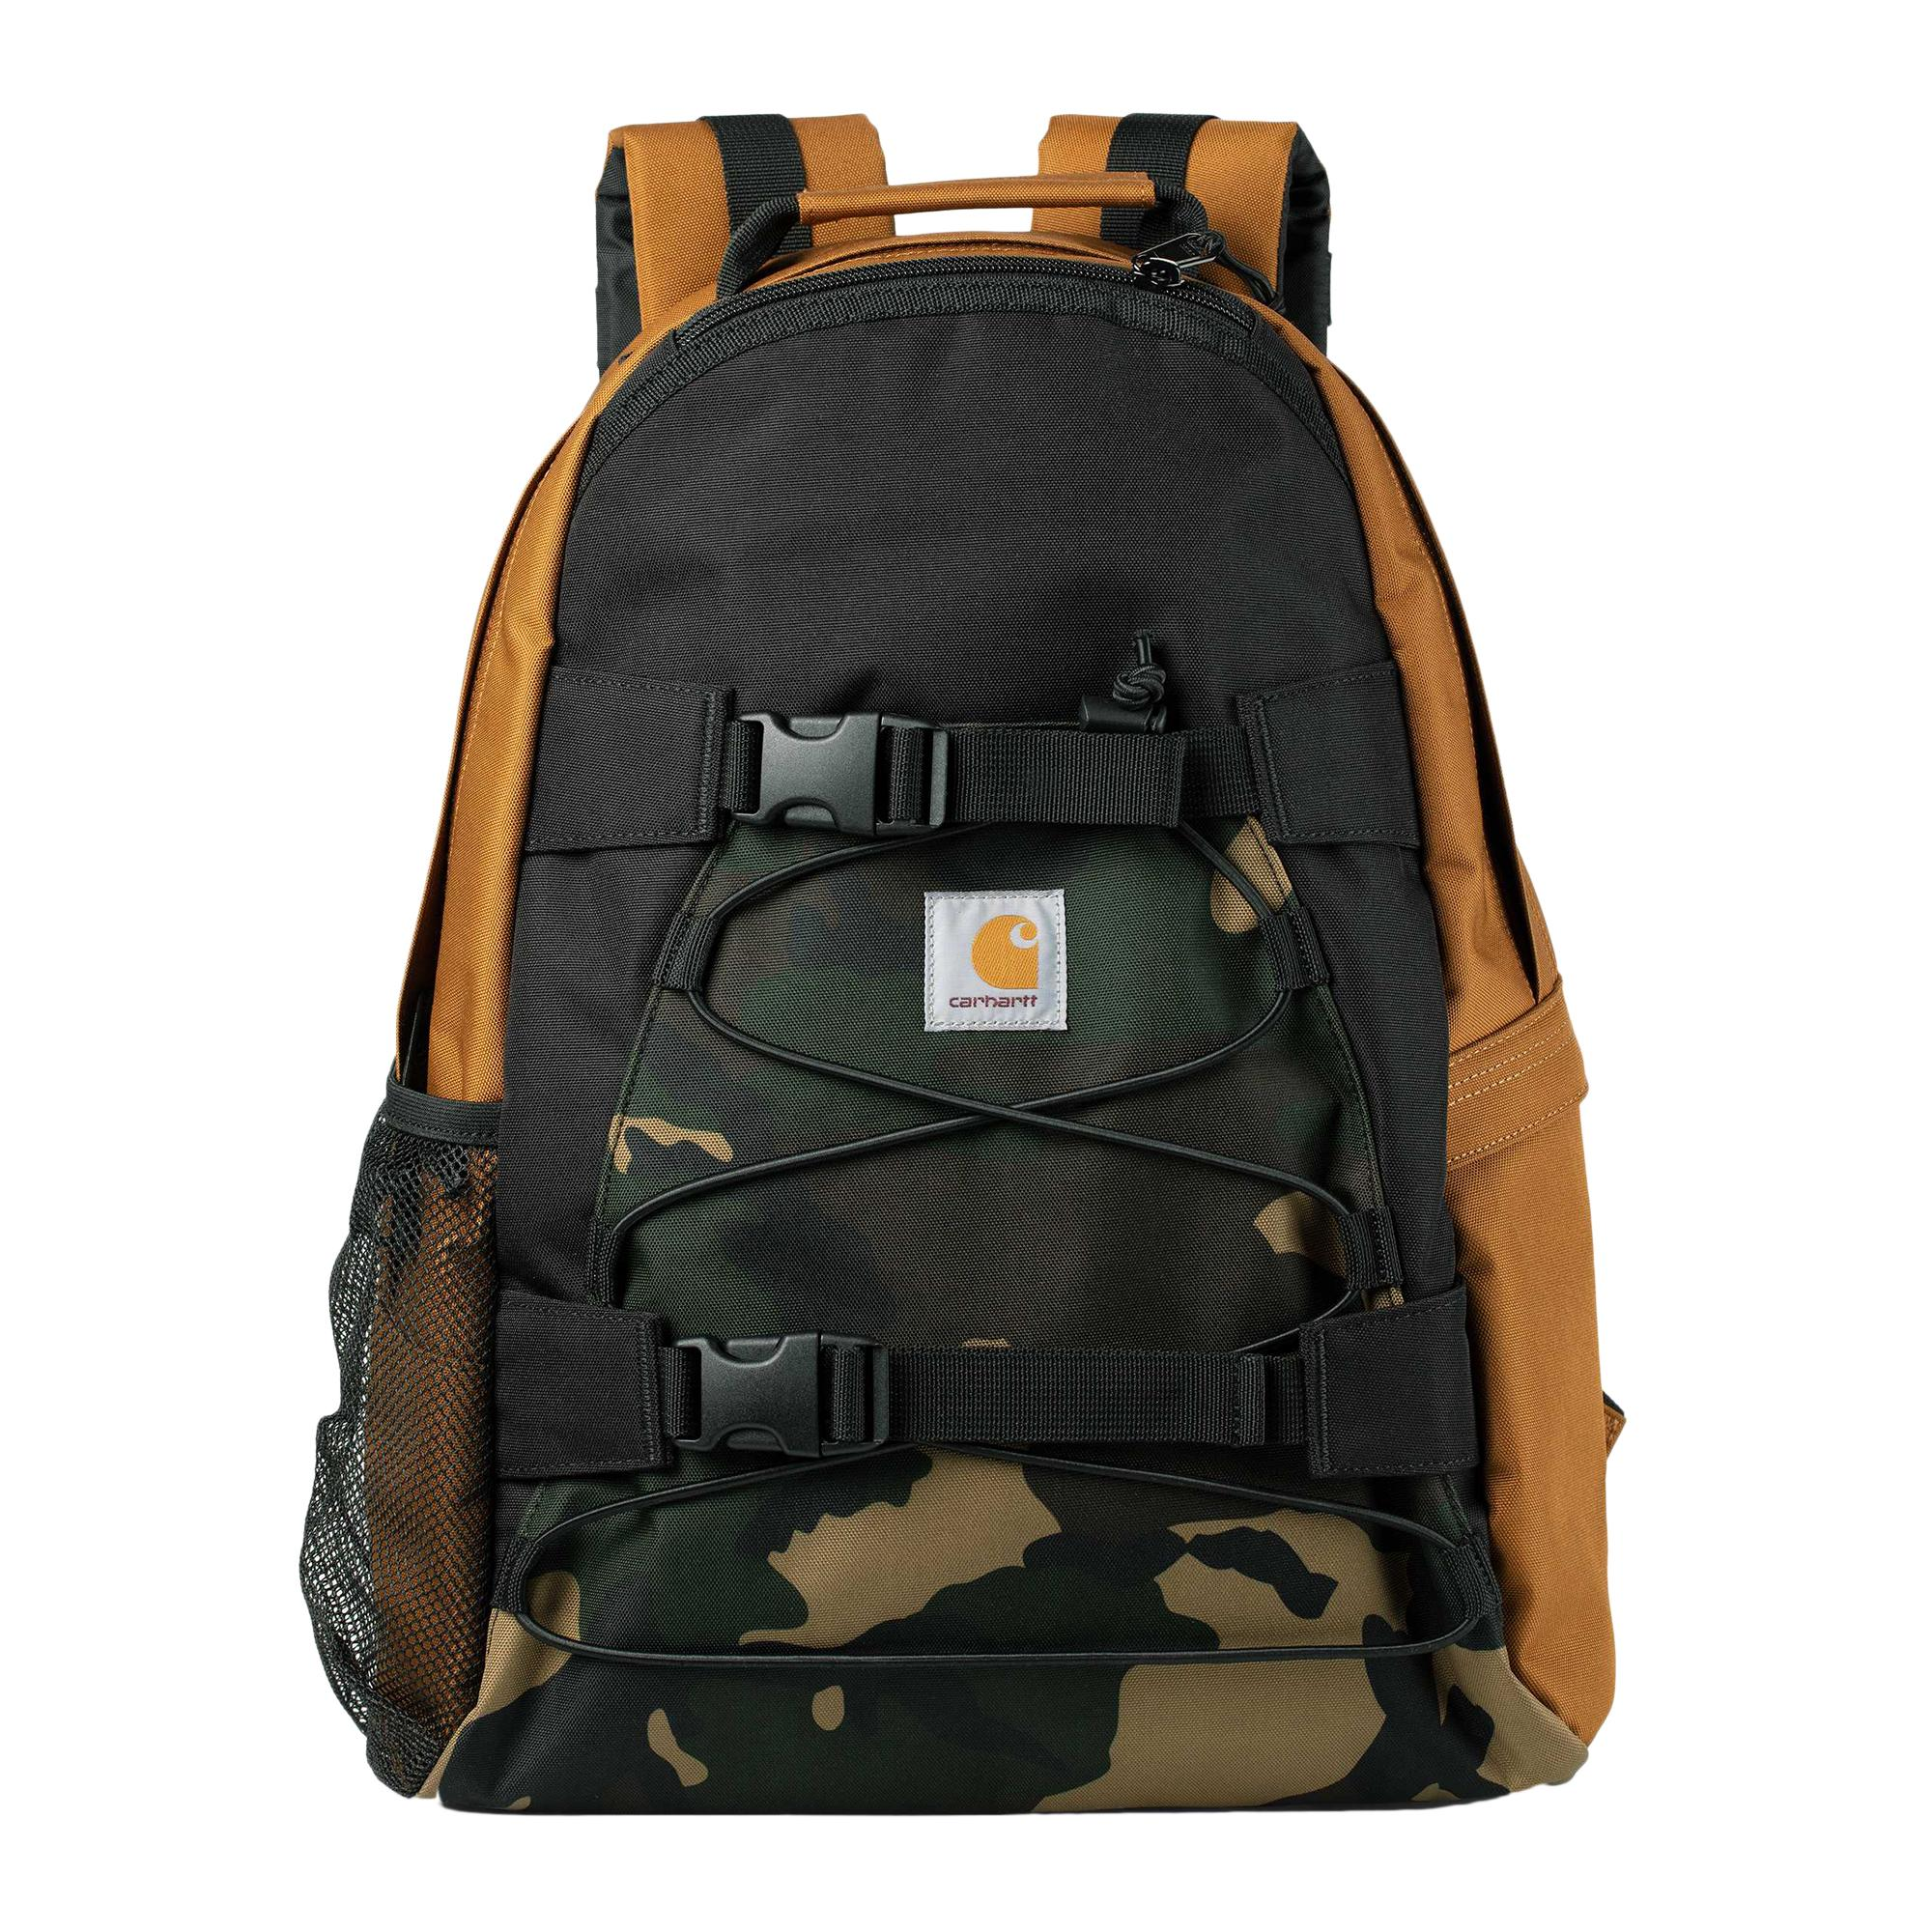 Carhartt Kickflip Backpack Multicolor